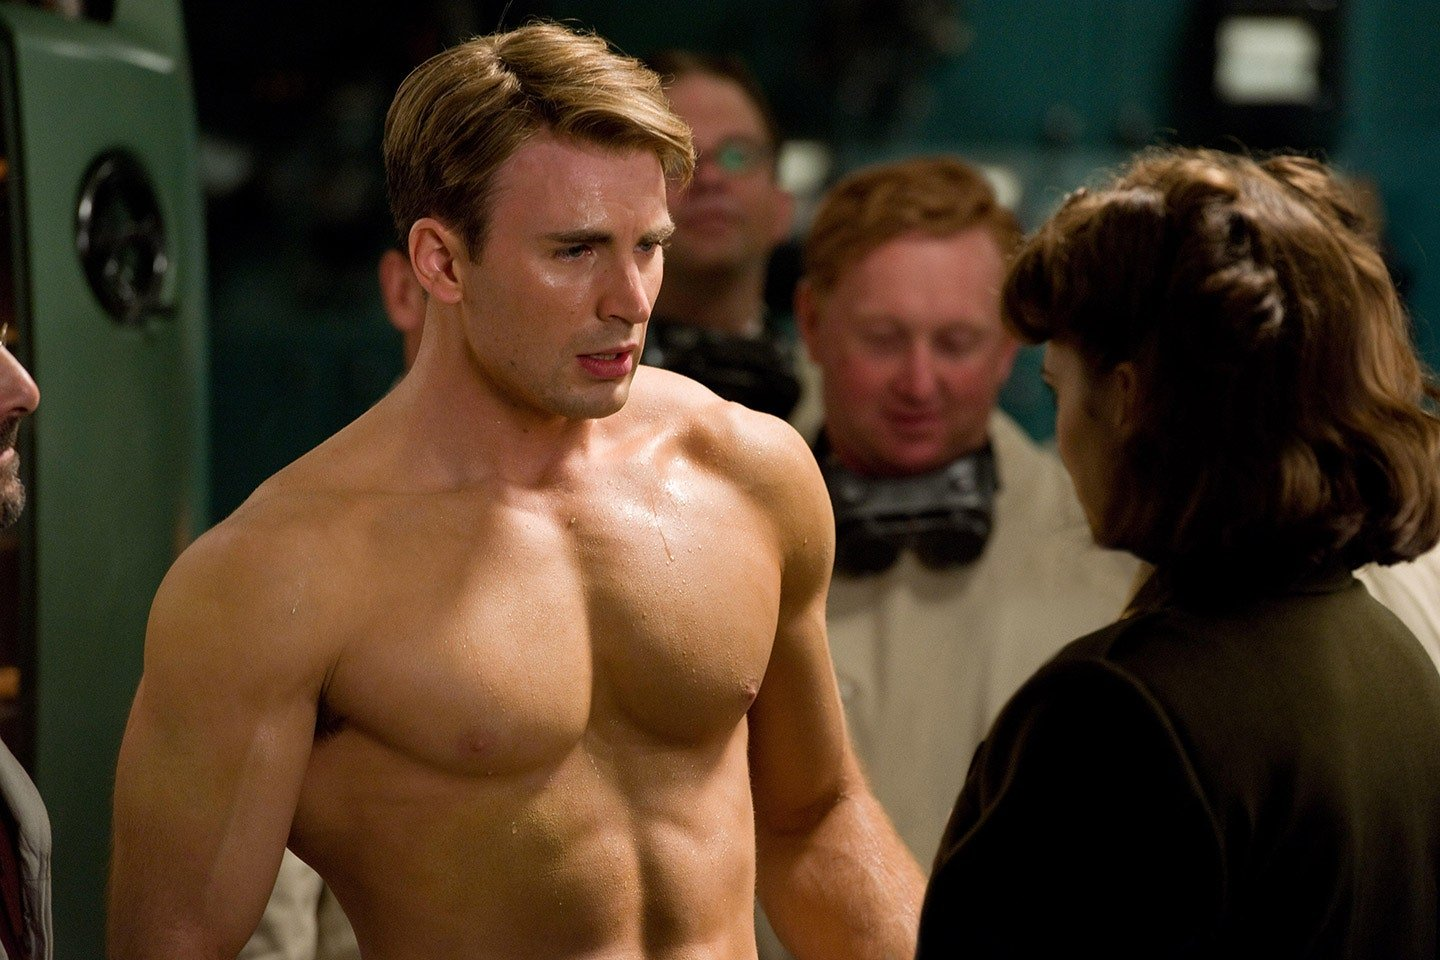 chris evans captain america 20 Things You Didn't Know About Chris Evans